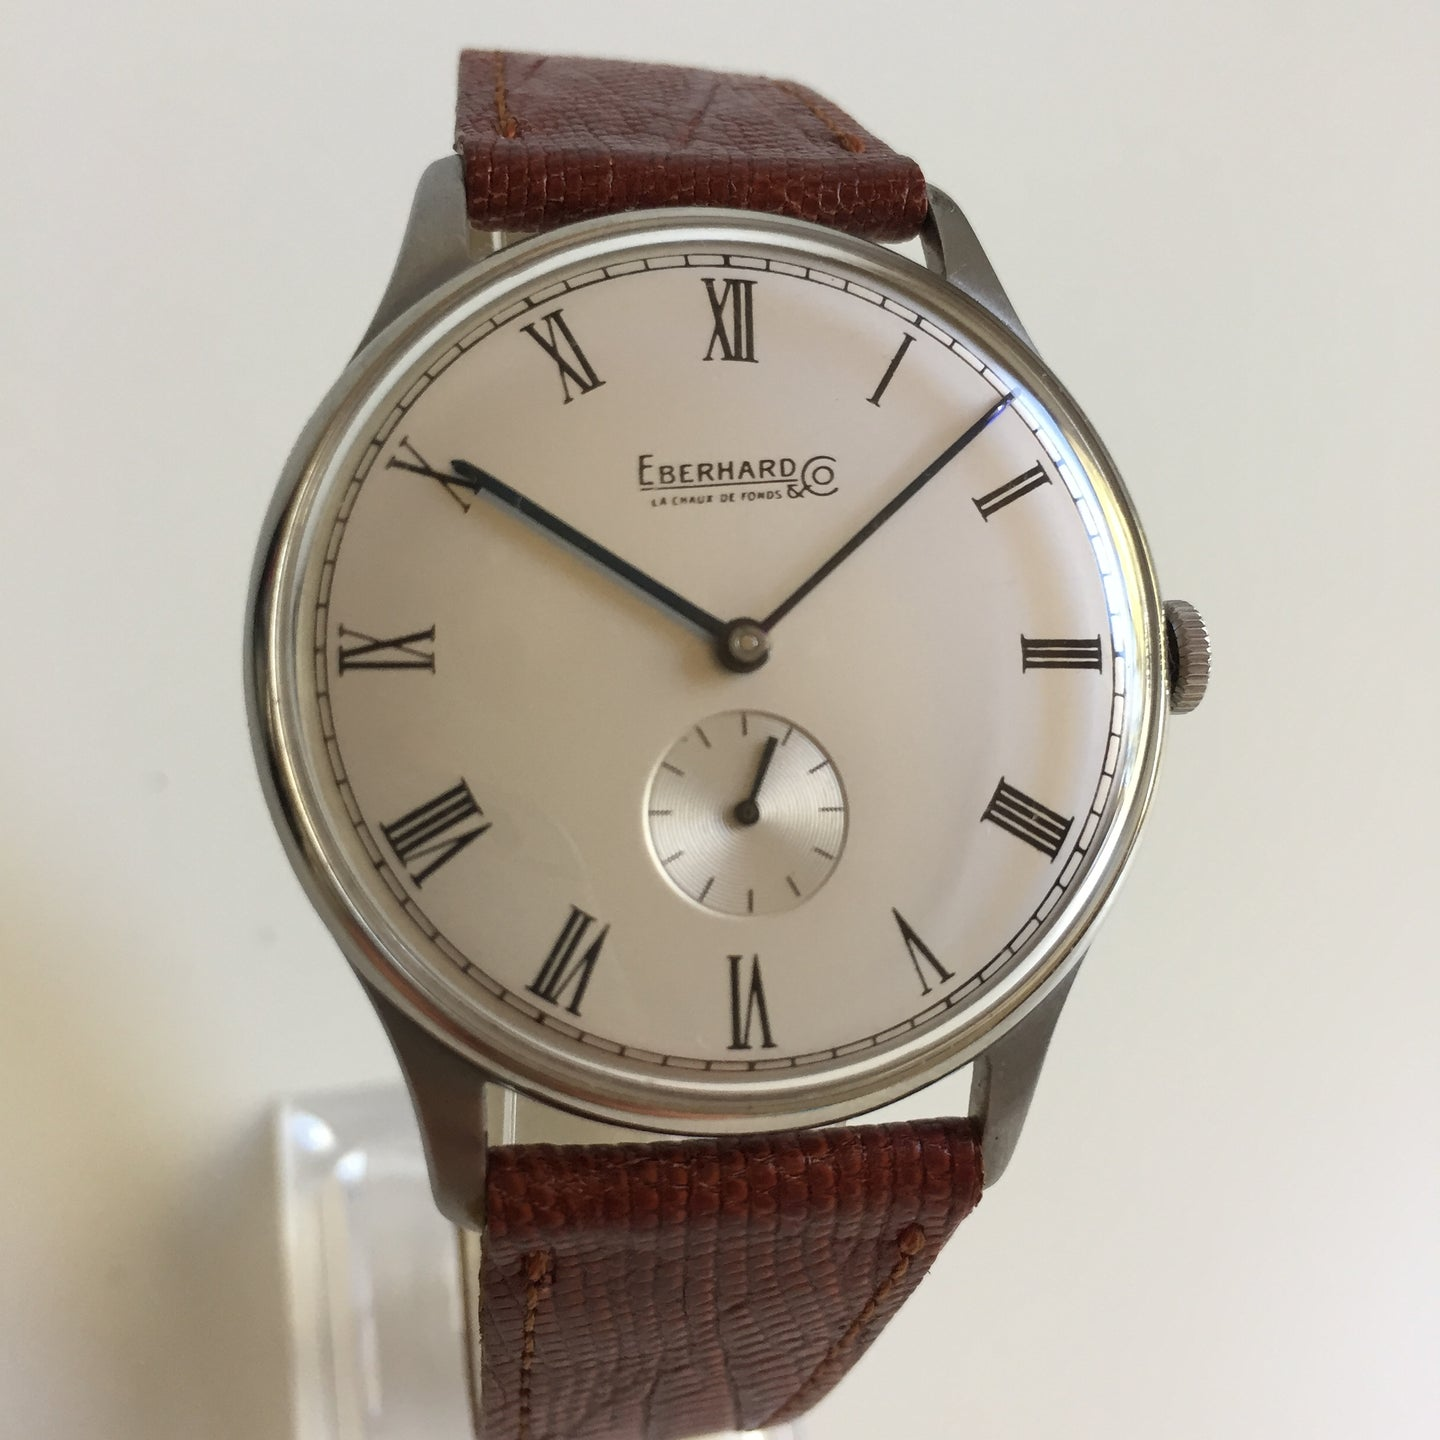 Vintage Eberhard & Co watch